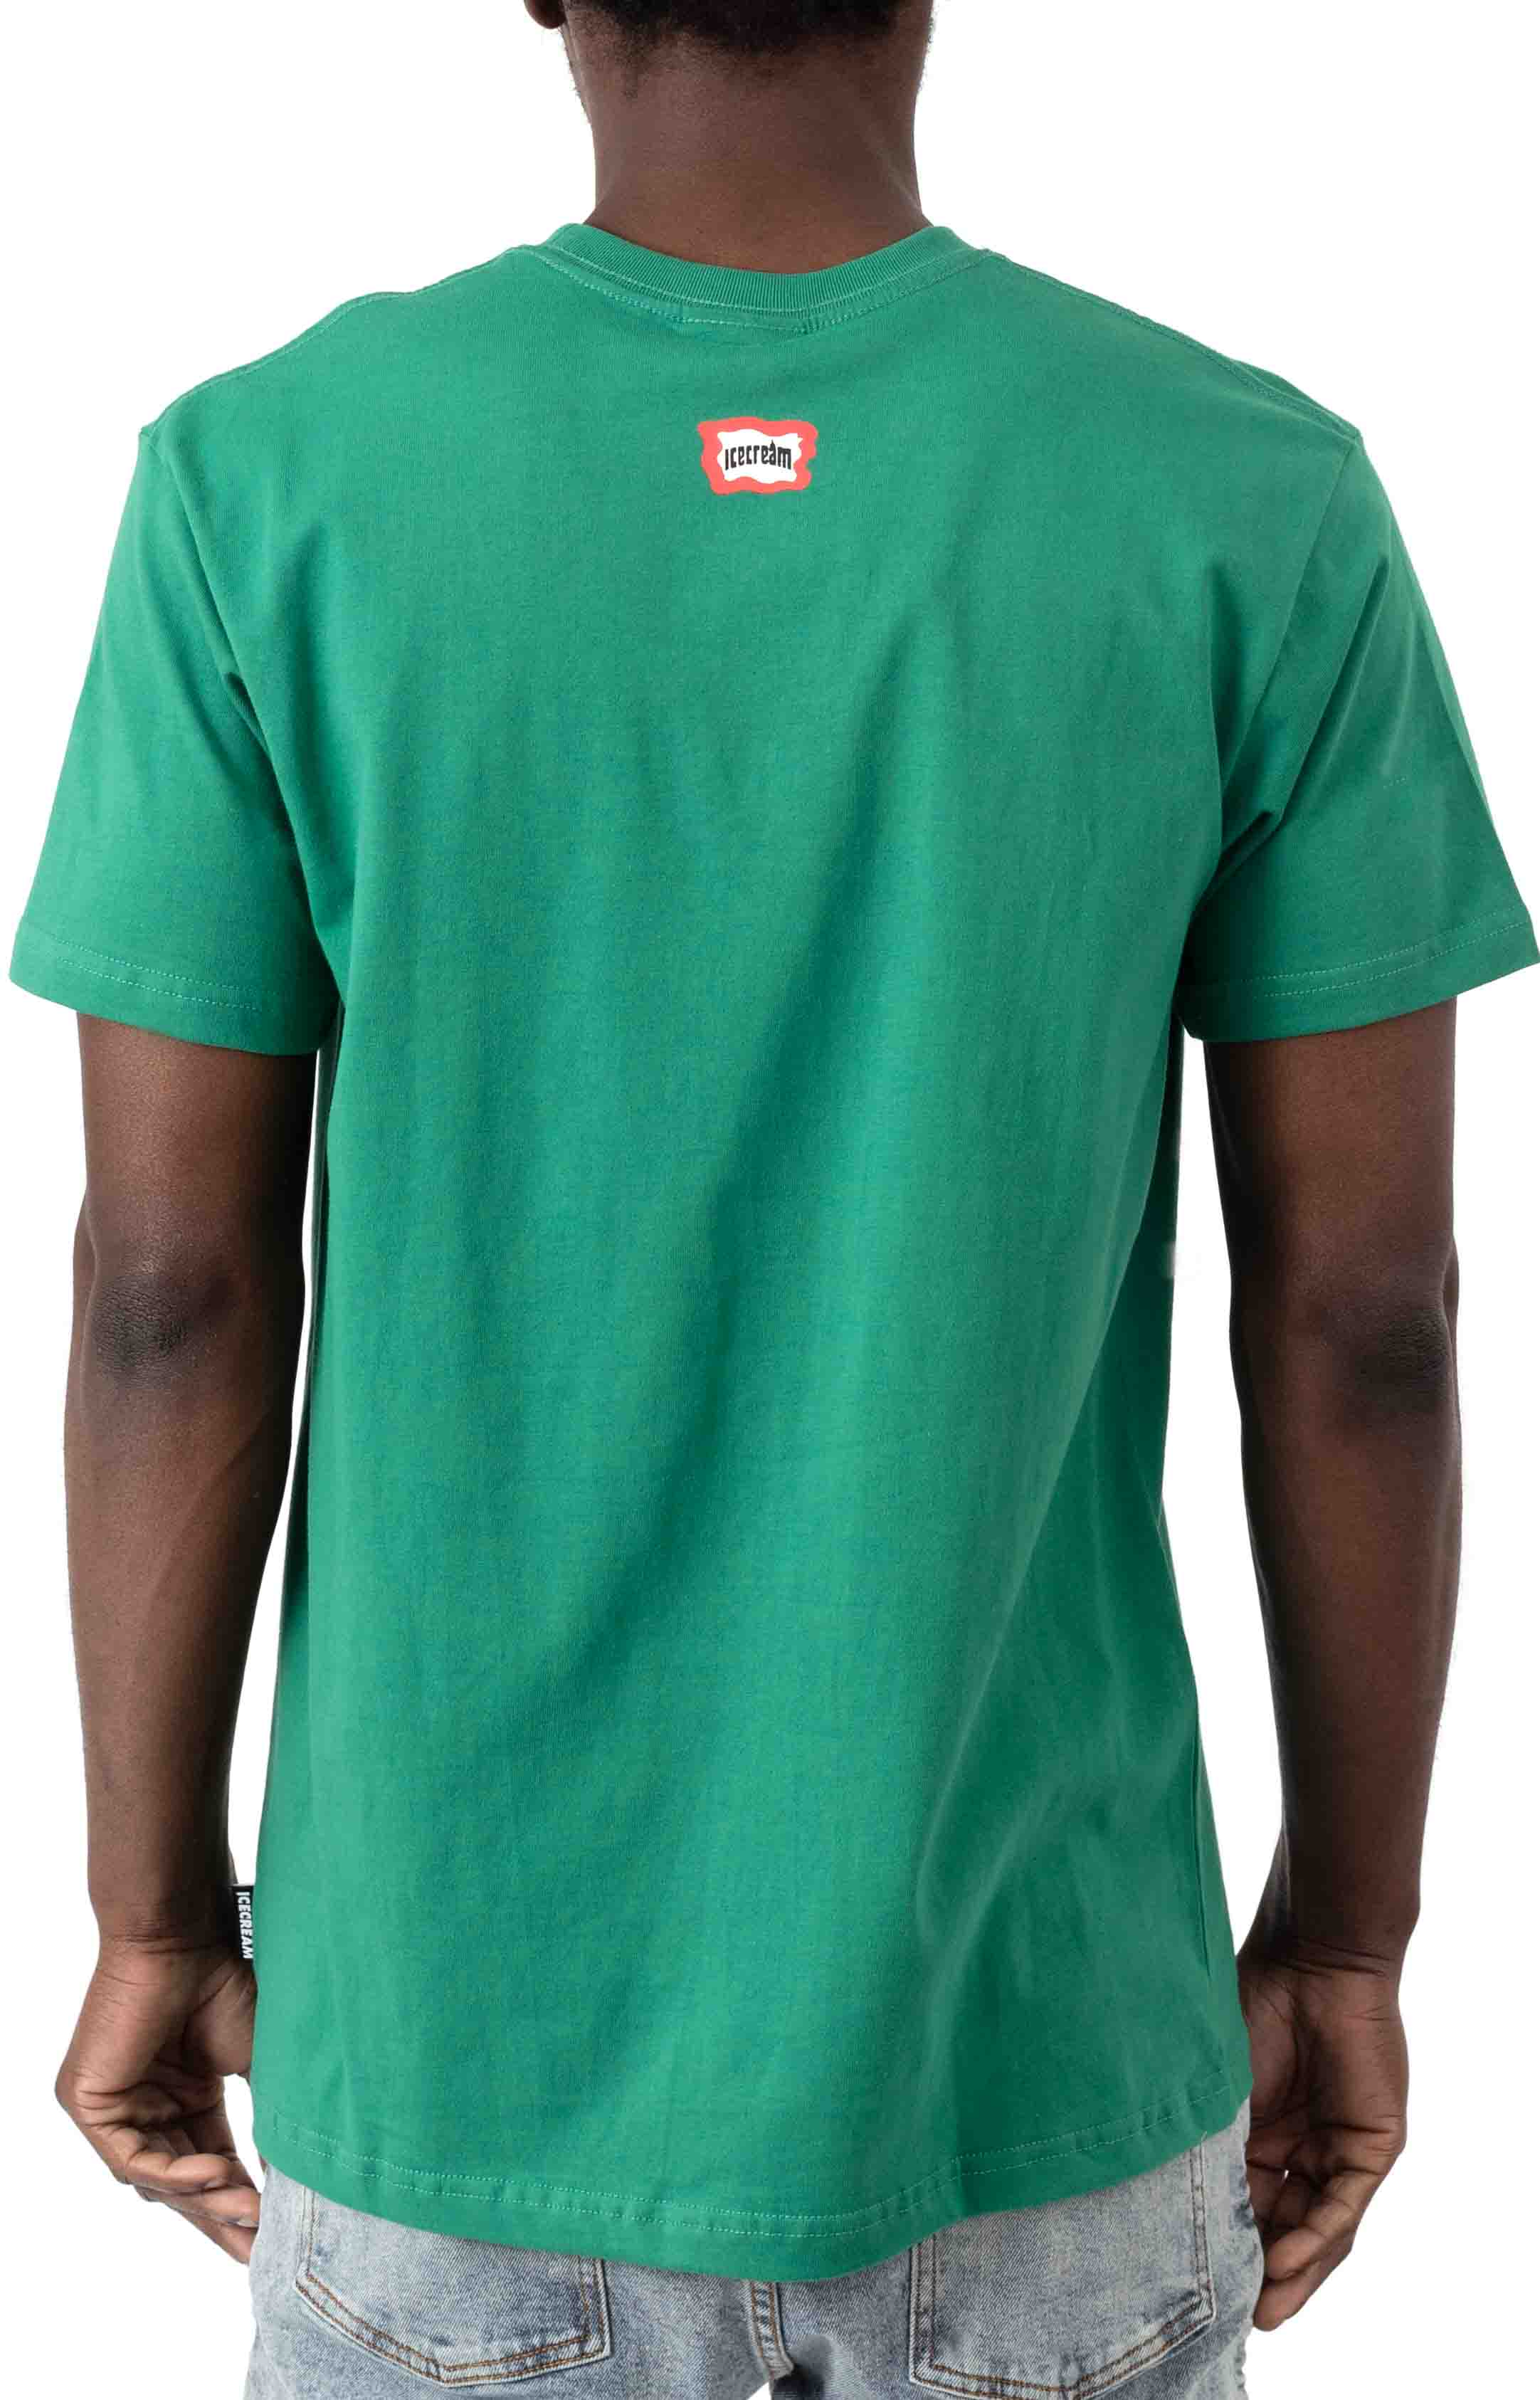 Run T-Shirt - Pine Green 3